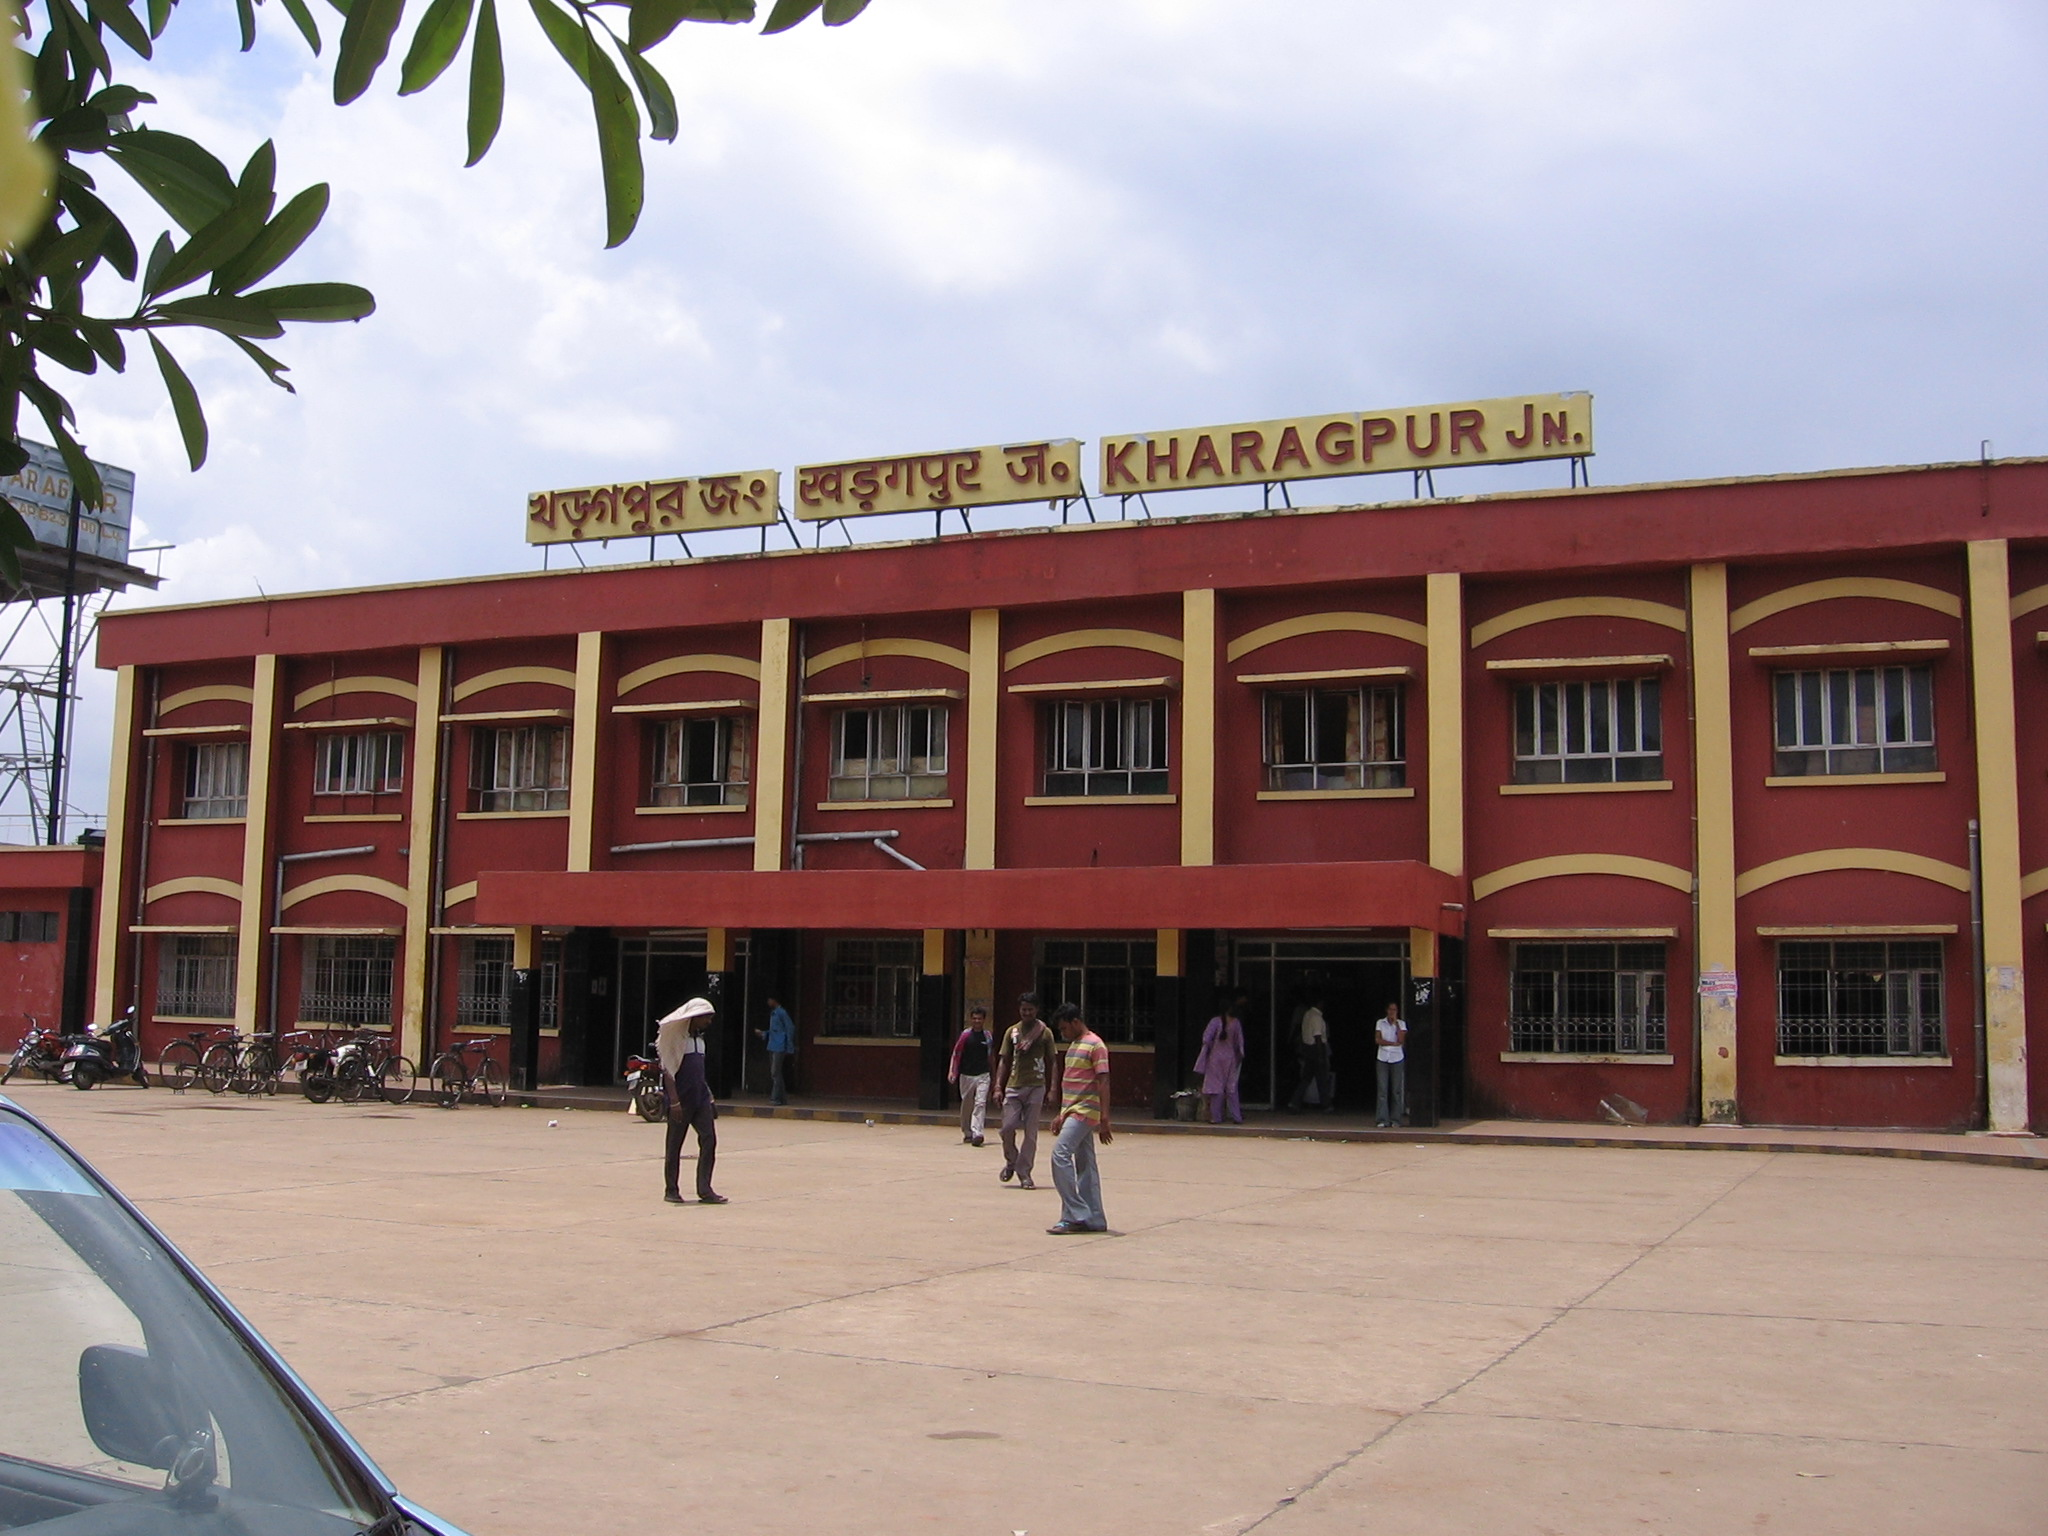 kharagpur dating site Paschim medinipur district or west midnapore district (pron: ˌmɪdnəˈpʊə) (also known as midnapore west) is one of the districts of the state of west bengal, india it was formed on 1 january 2002 after the partition of midnapore into paschim medinipur and purba medinipur on 4 april 2017, the jhargram subdivision was converted into a.